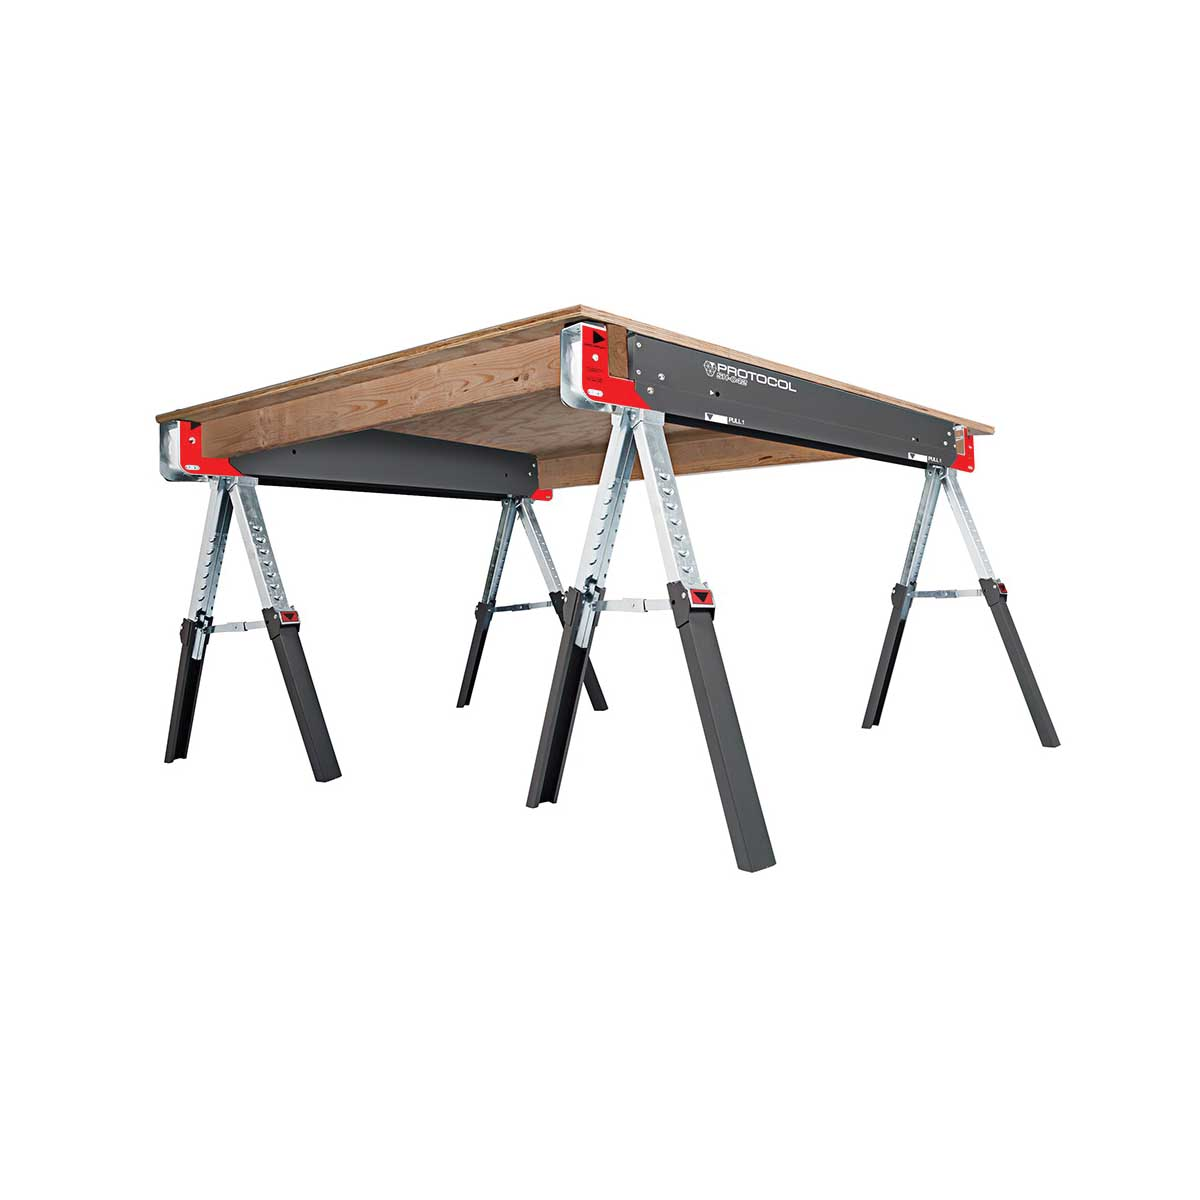 Picture of PROTOCOL 67104 Work Table, 42 in OAW, 6 in OAD, 32 in OAH, 2600 lb, Steel Surface